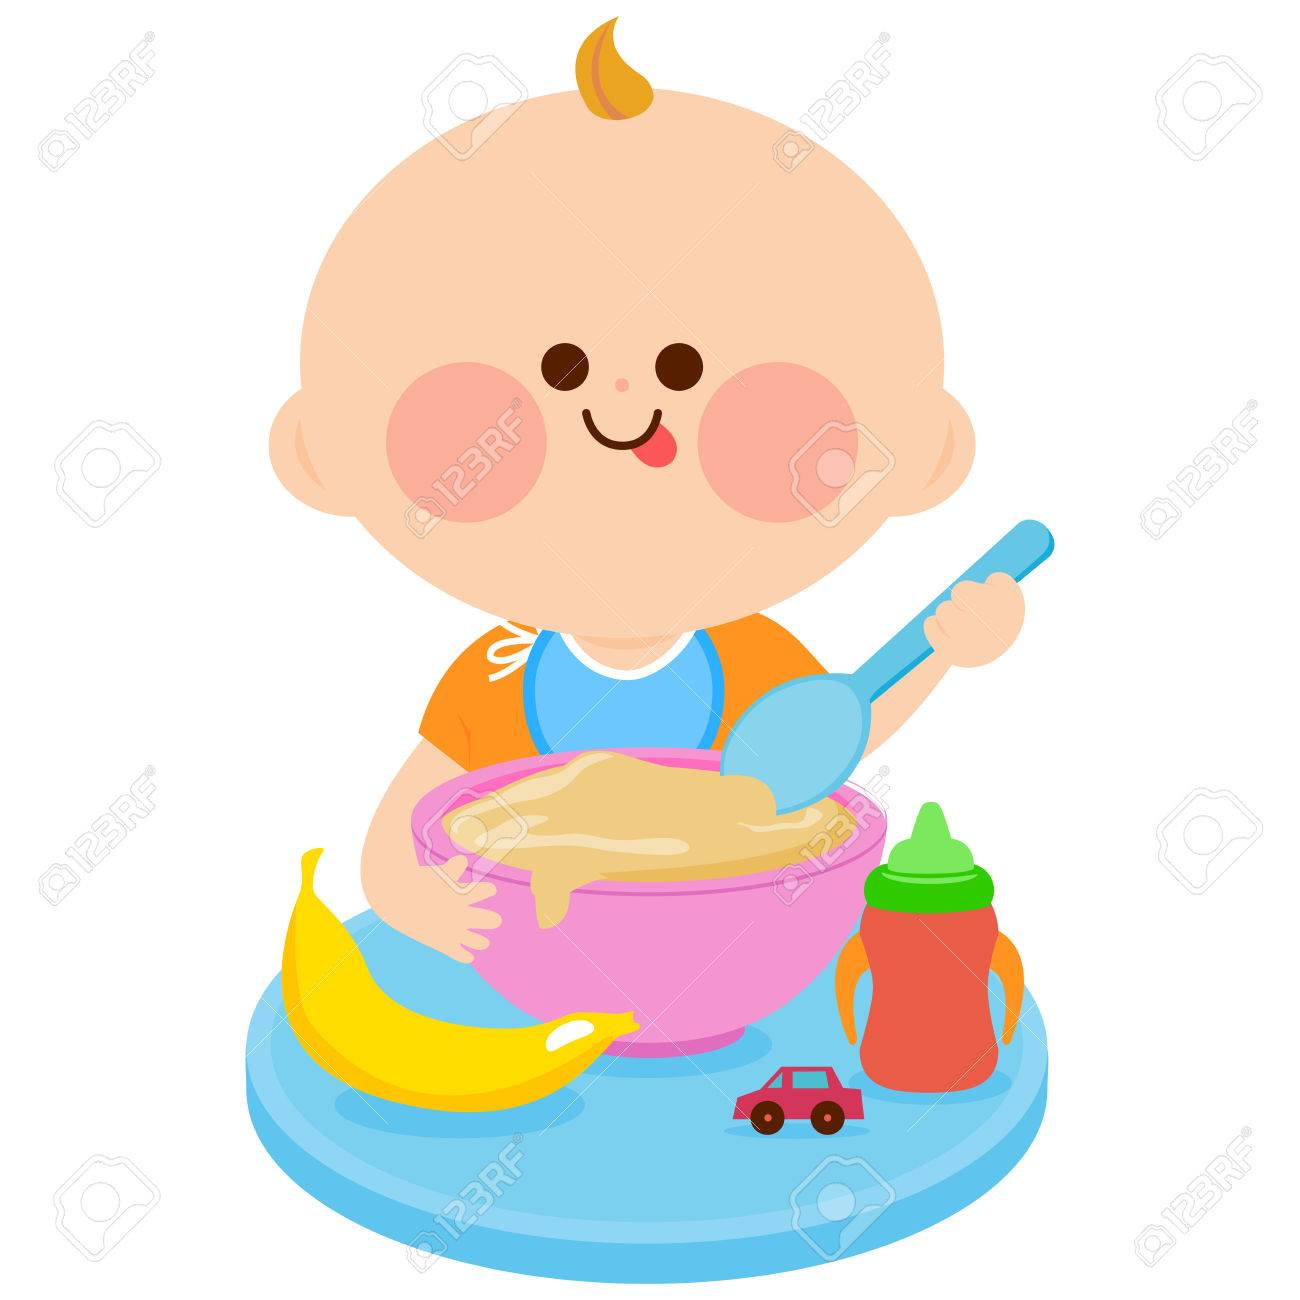 Baby eating cereal - 62129067